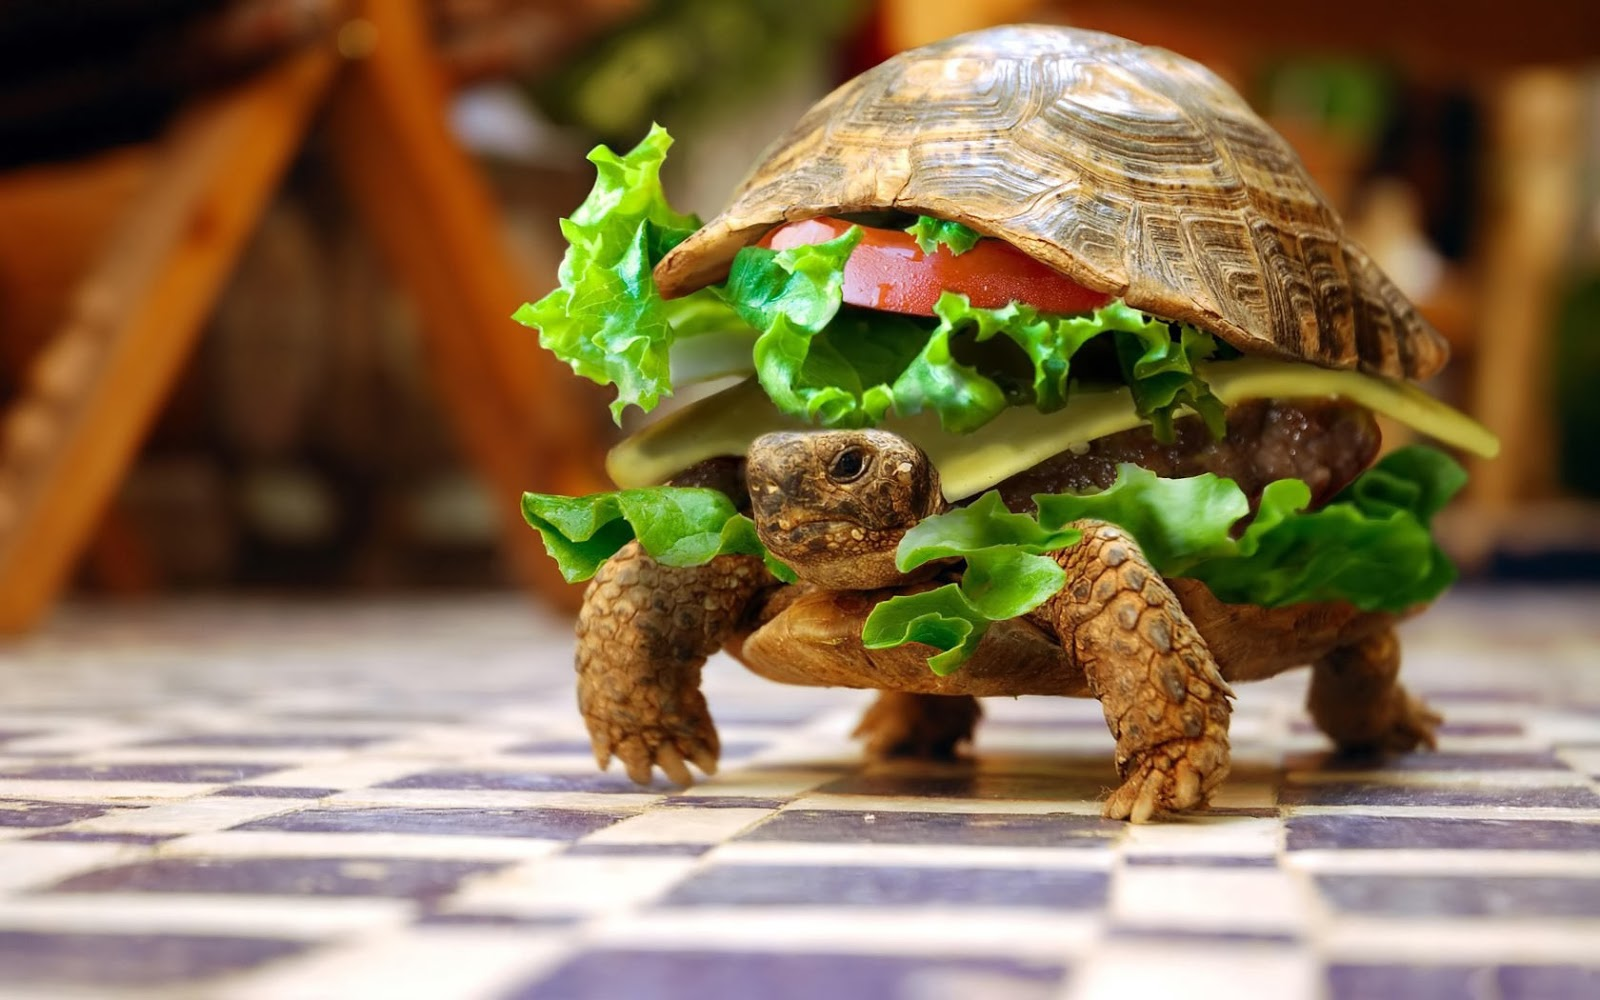 Cool Tortoise Pictures HD Download